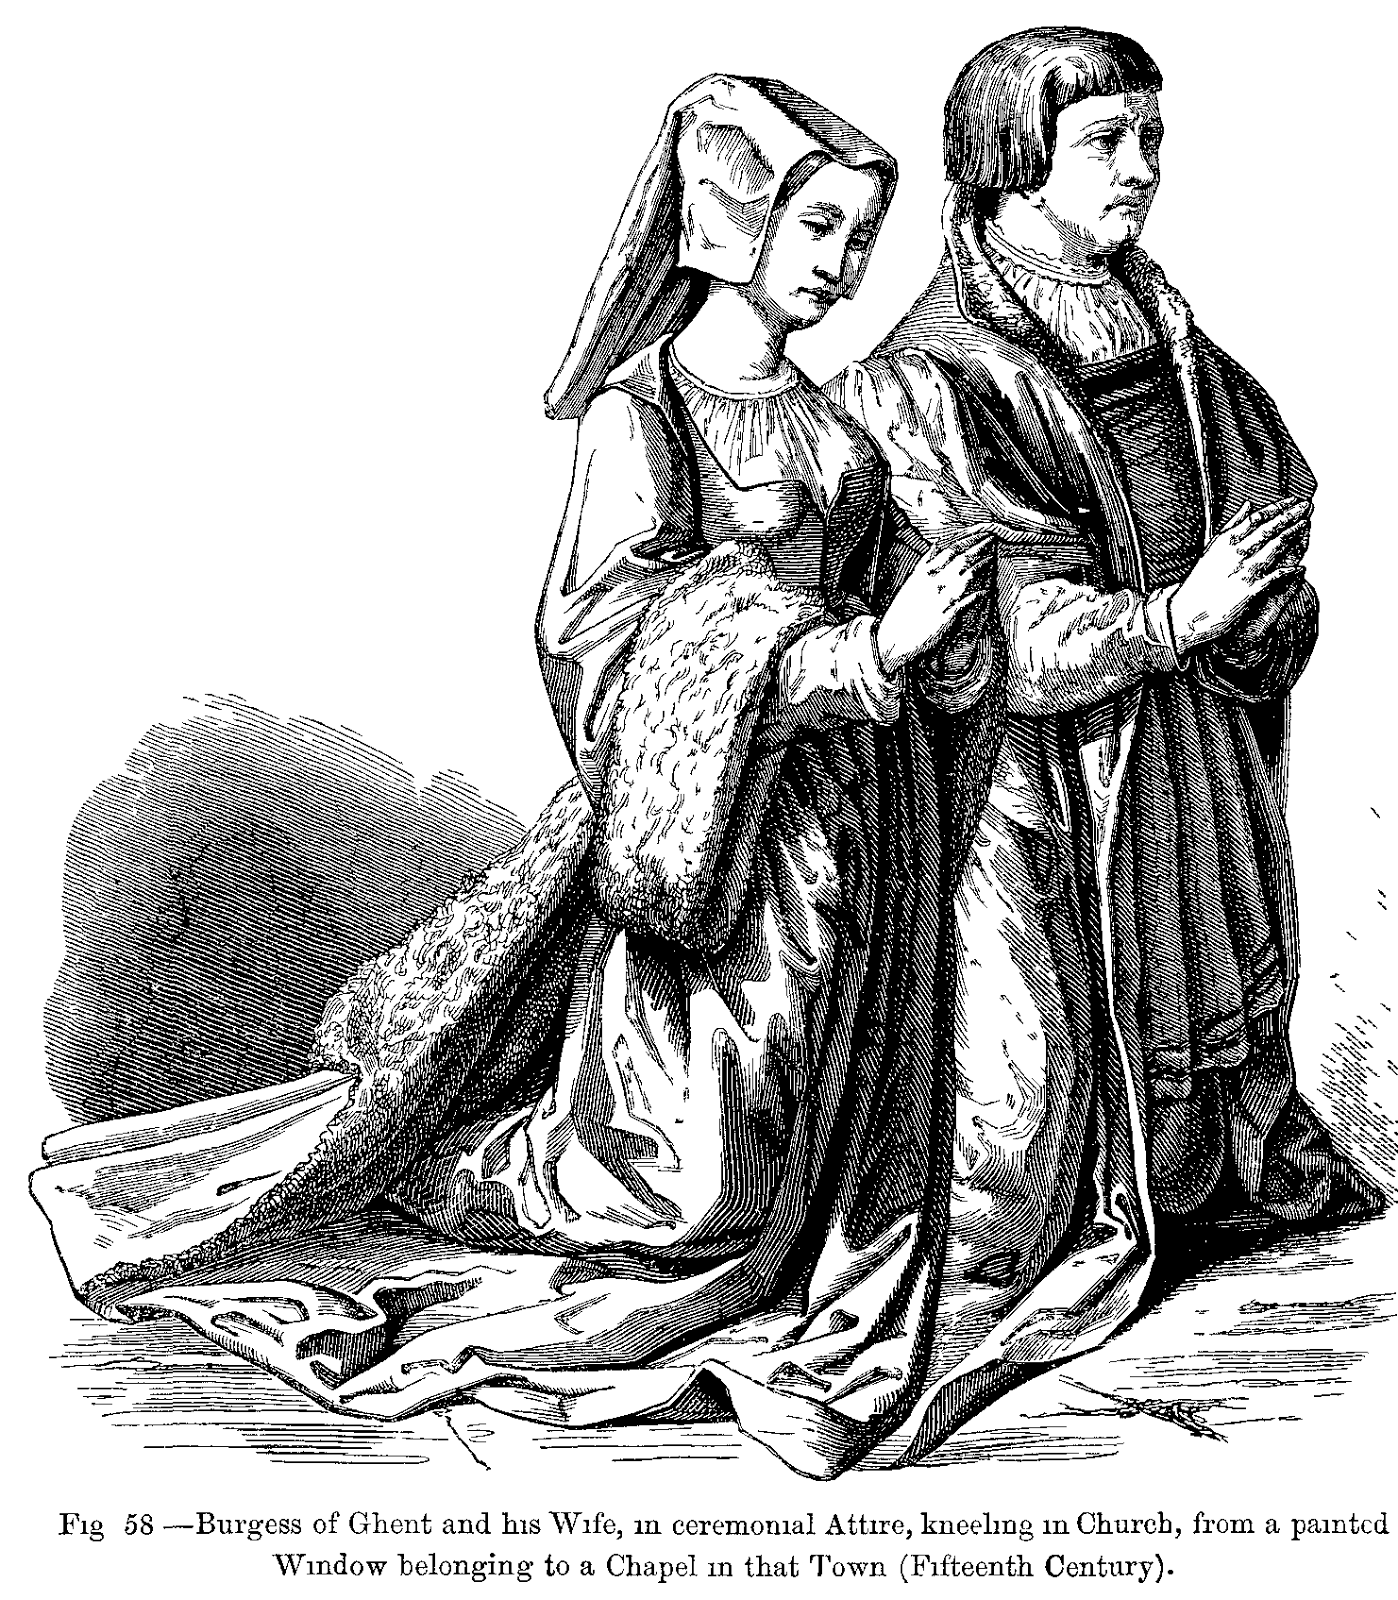 from my reference books: Custom and Dress During the Middle Ages and During the Renaissance Period